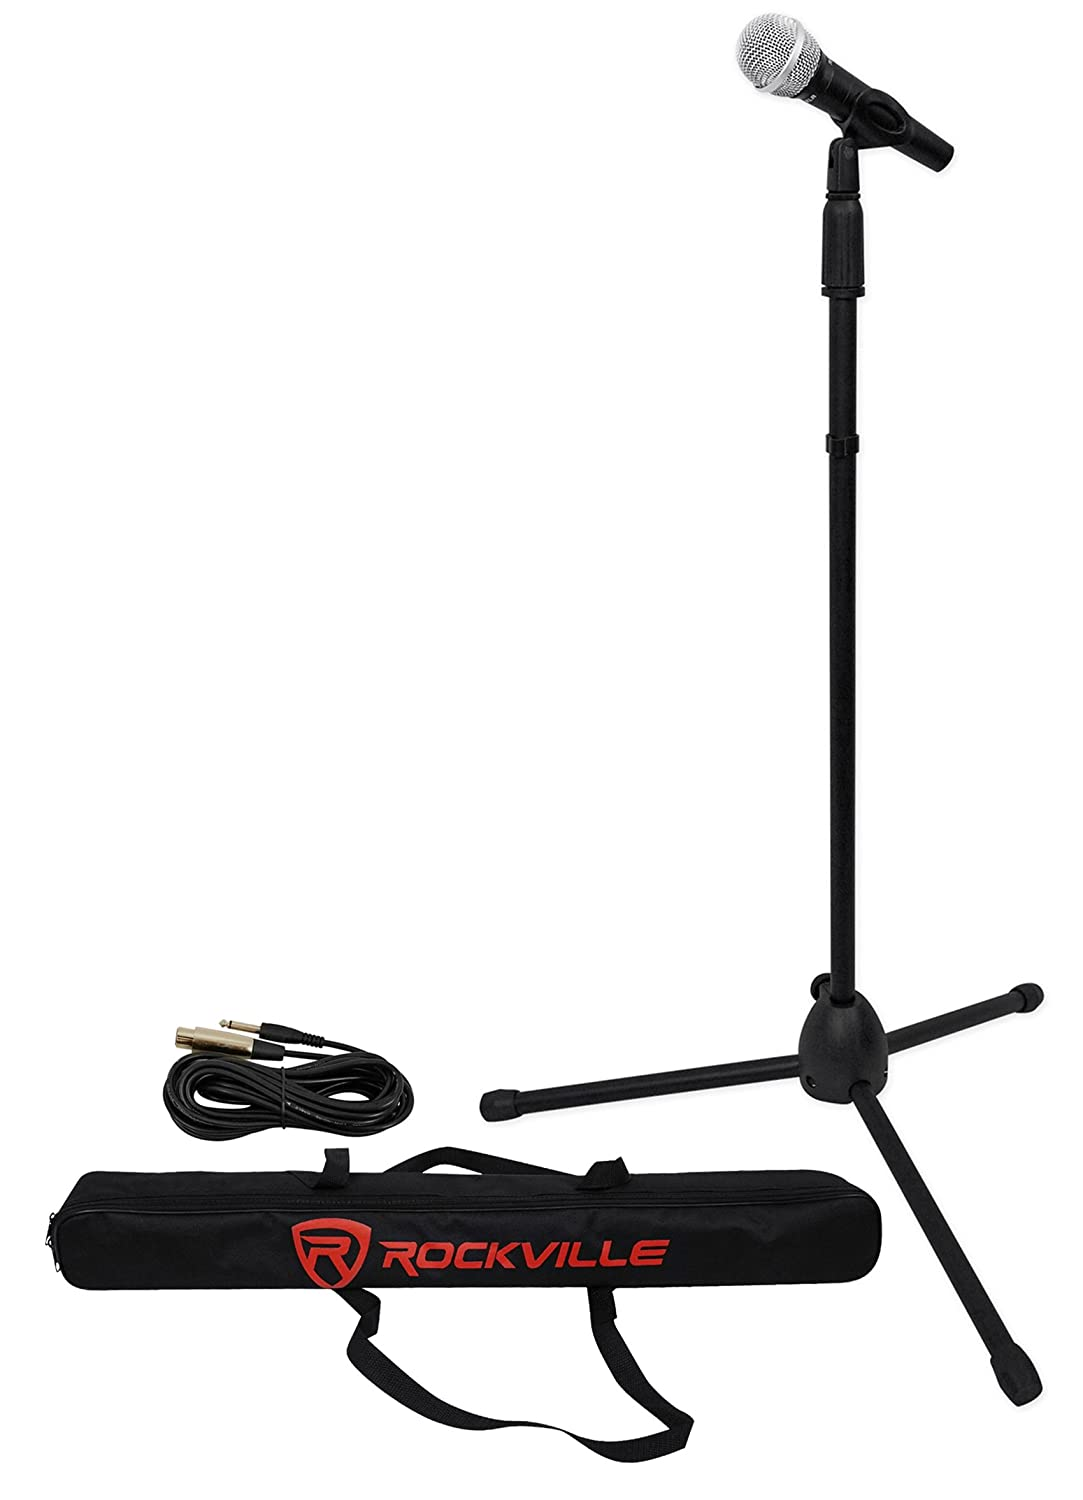 Rockville Pro Mic Kit 1-High-End Metal Microphone Plus Mic Stand Plus Carry Bag Plus Cable Audiosavings